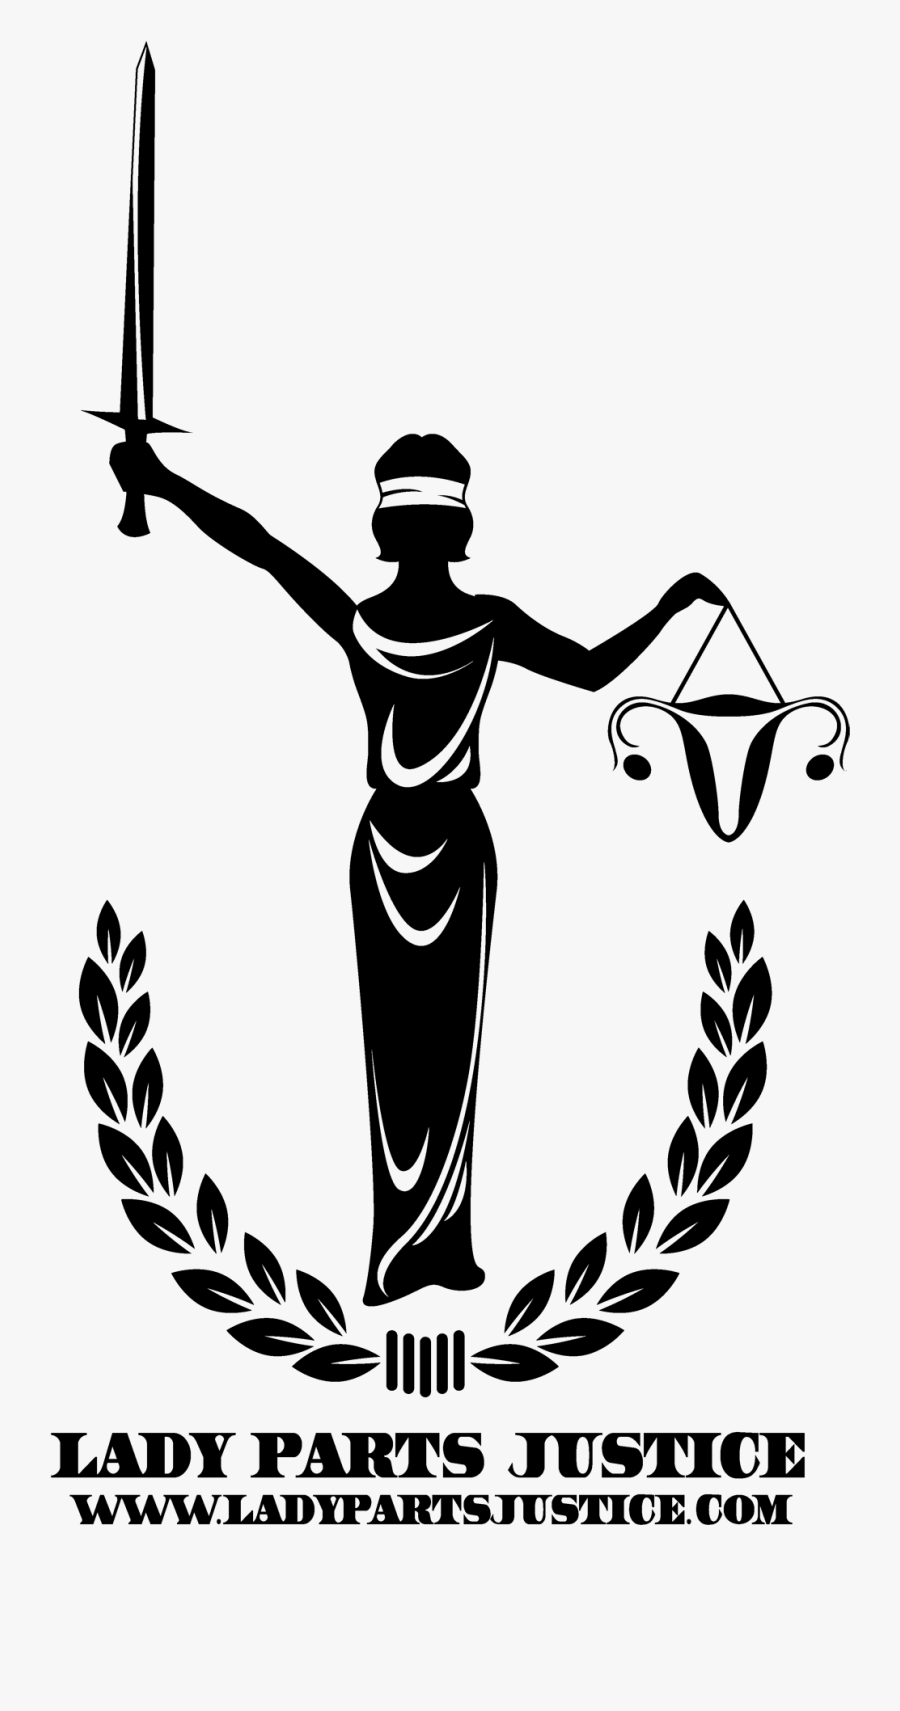 So Excited To Welcome Lady Parts Justice To The Roster - Symbol Of Human Rights, Transparent Clipart